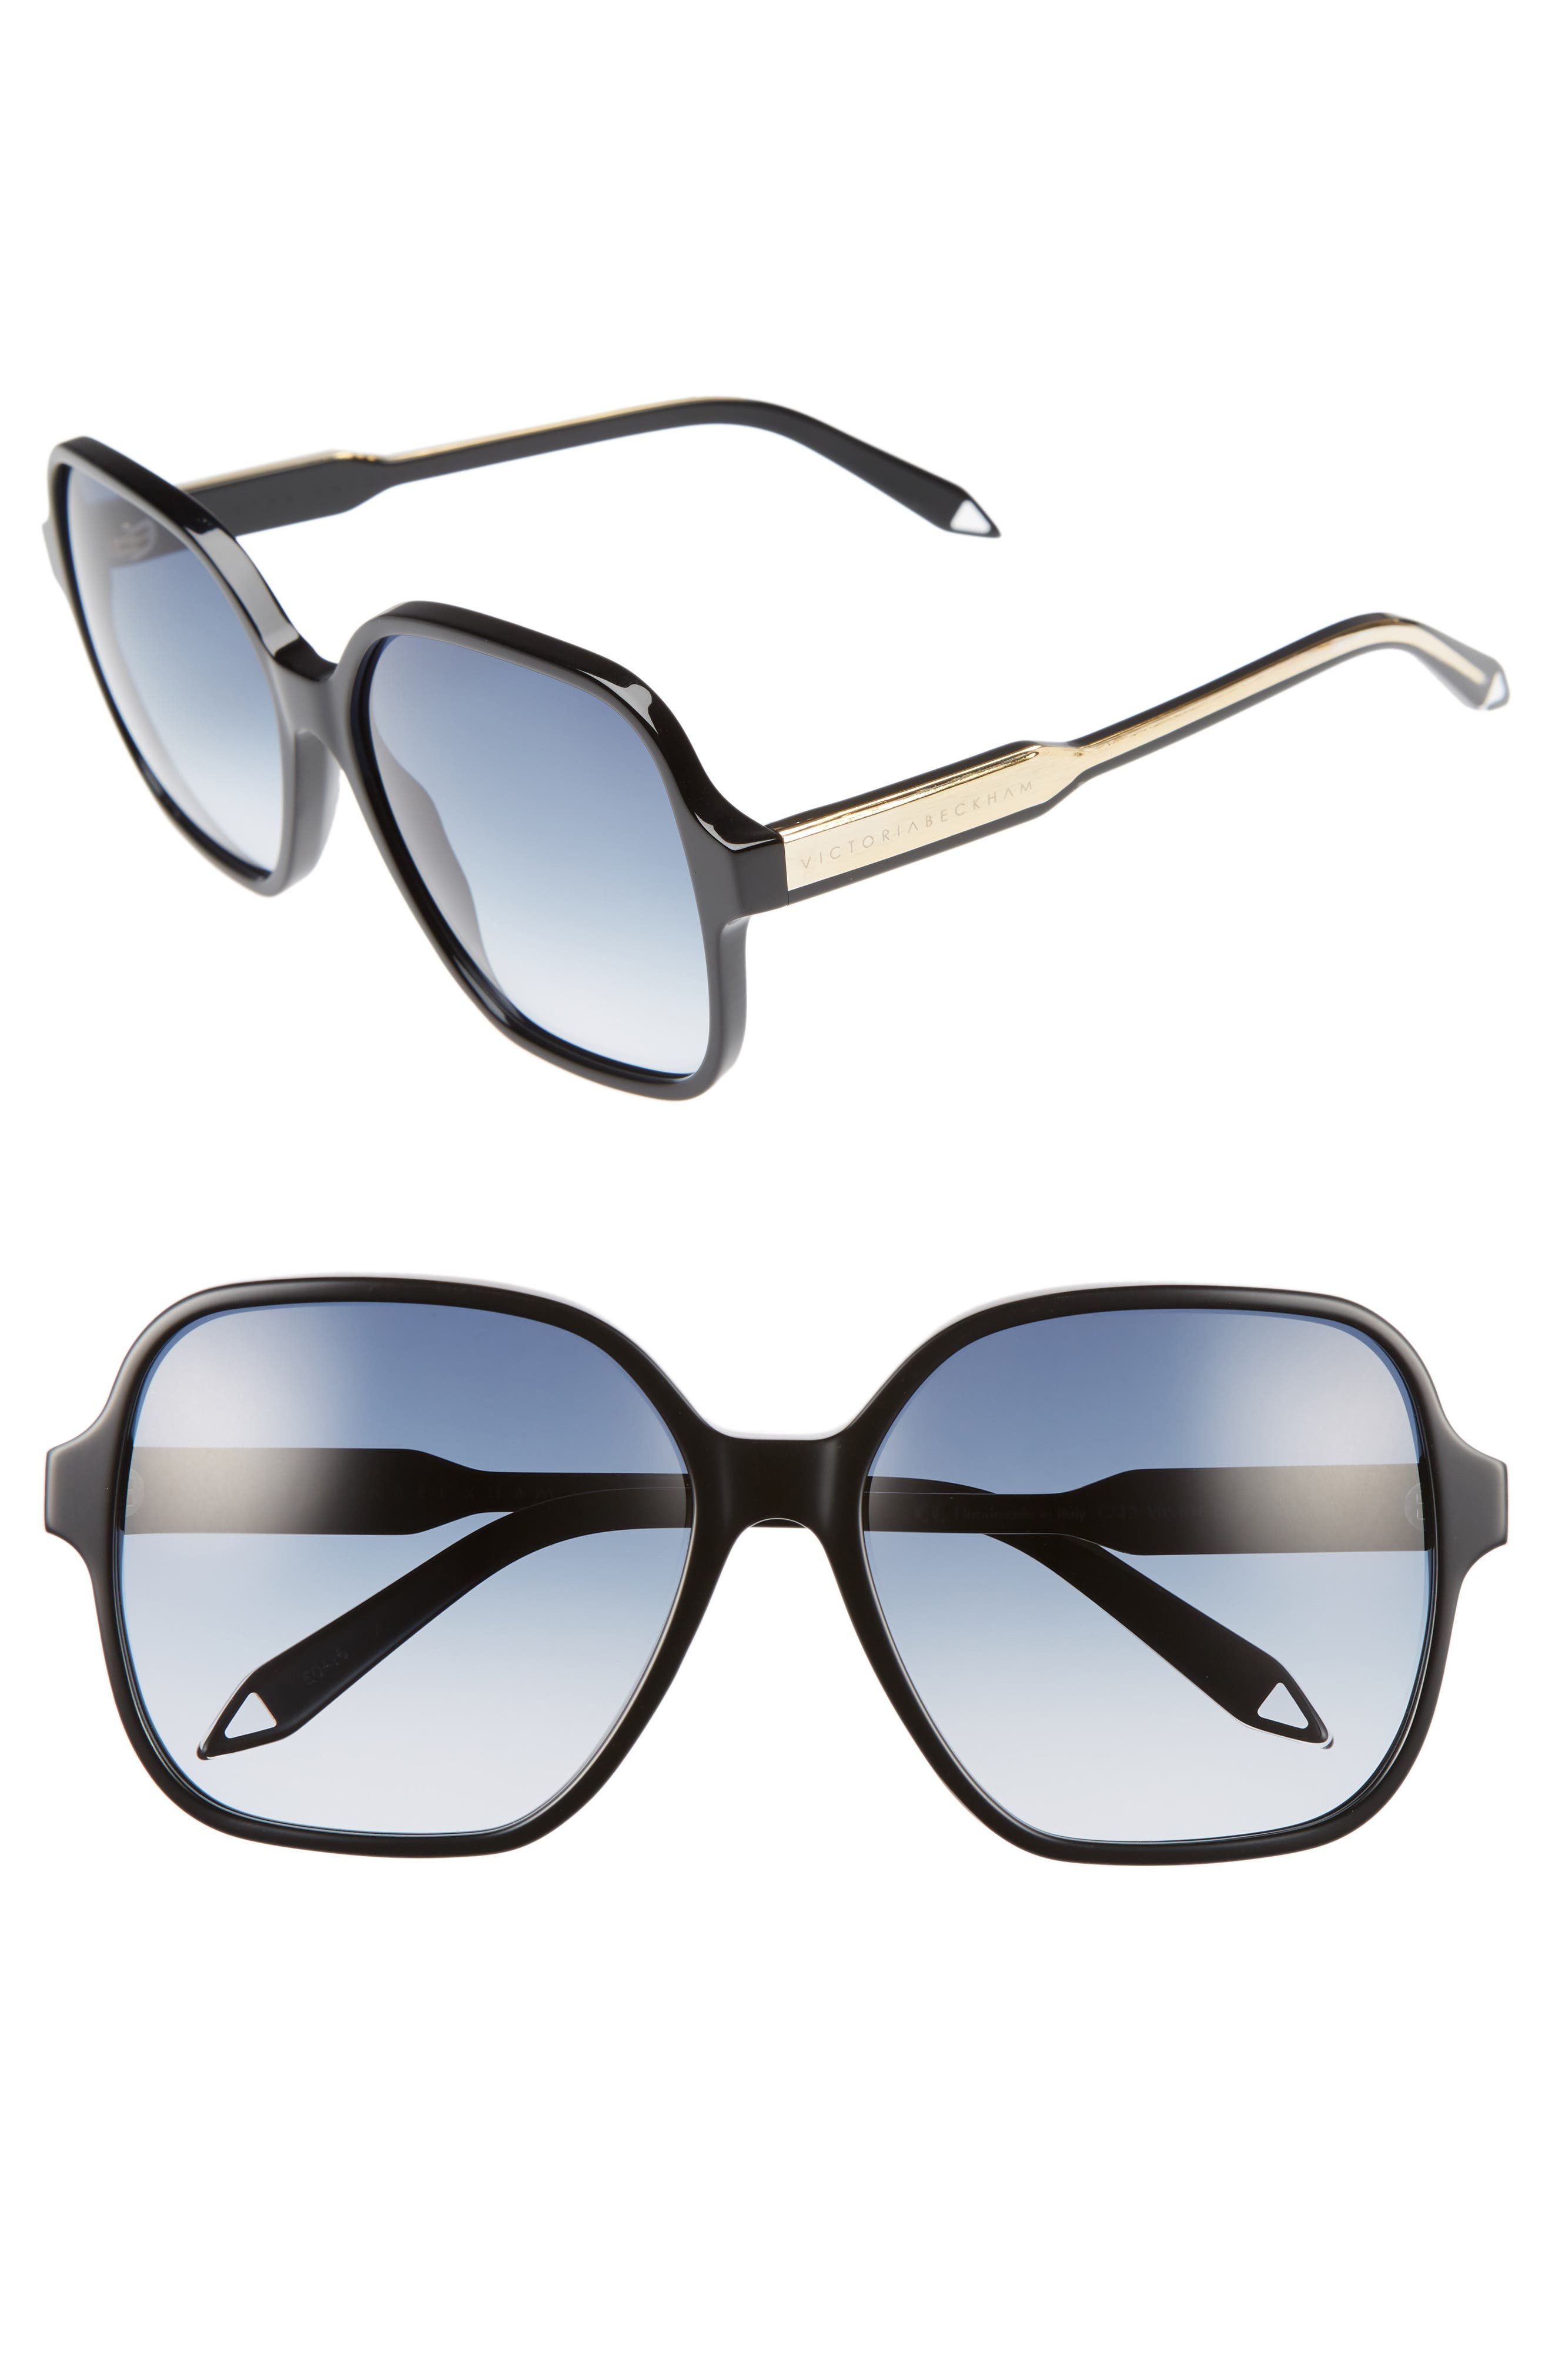 Iconic Square 59mm Sunglasses,                             Alternate thumbnail 2, color,                             001